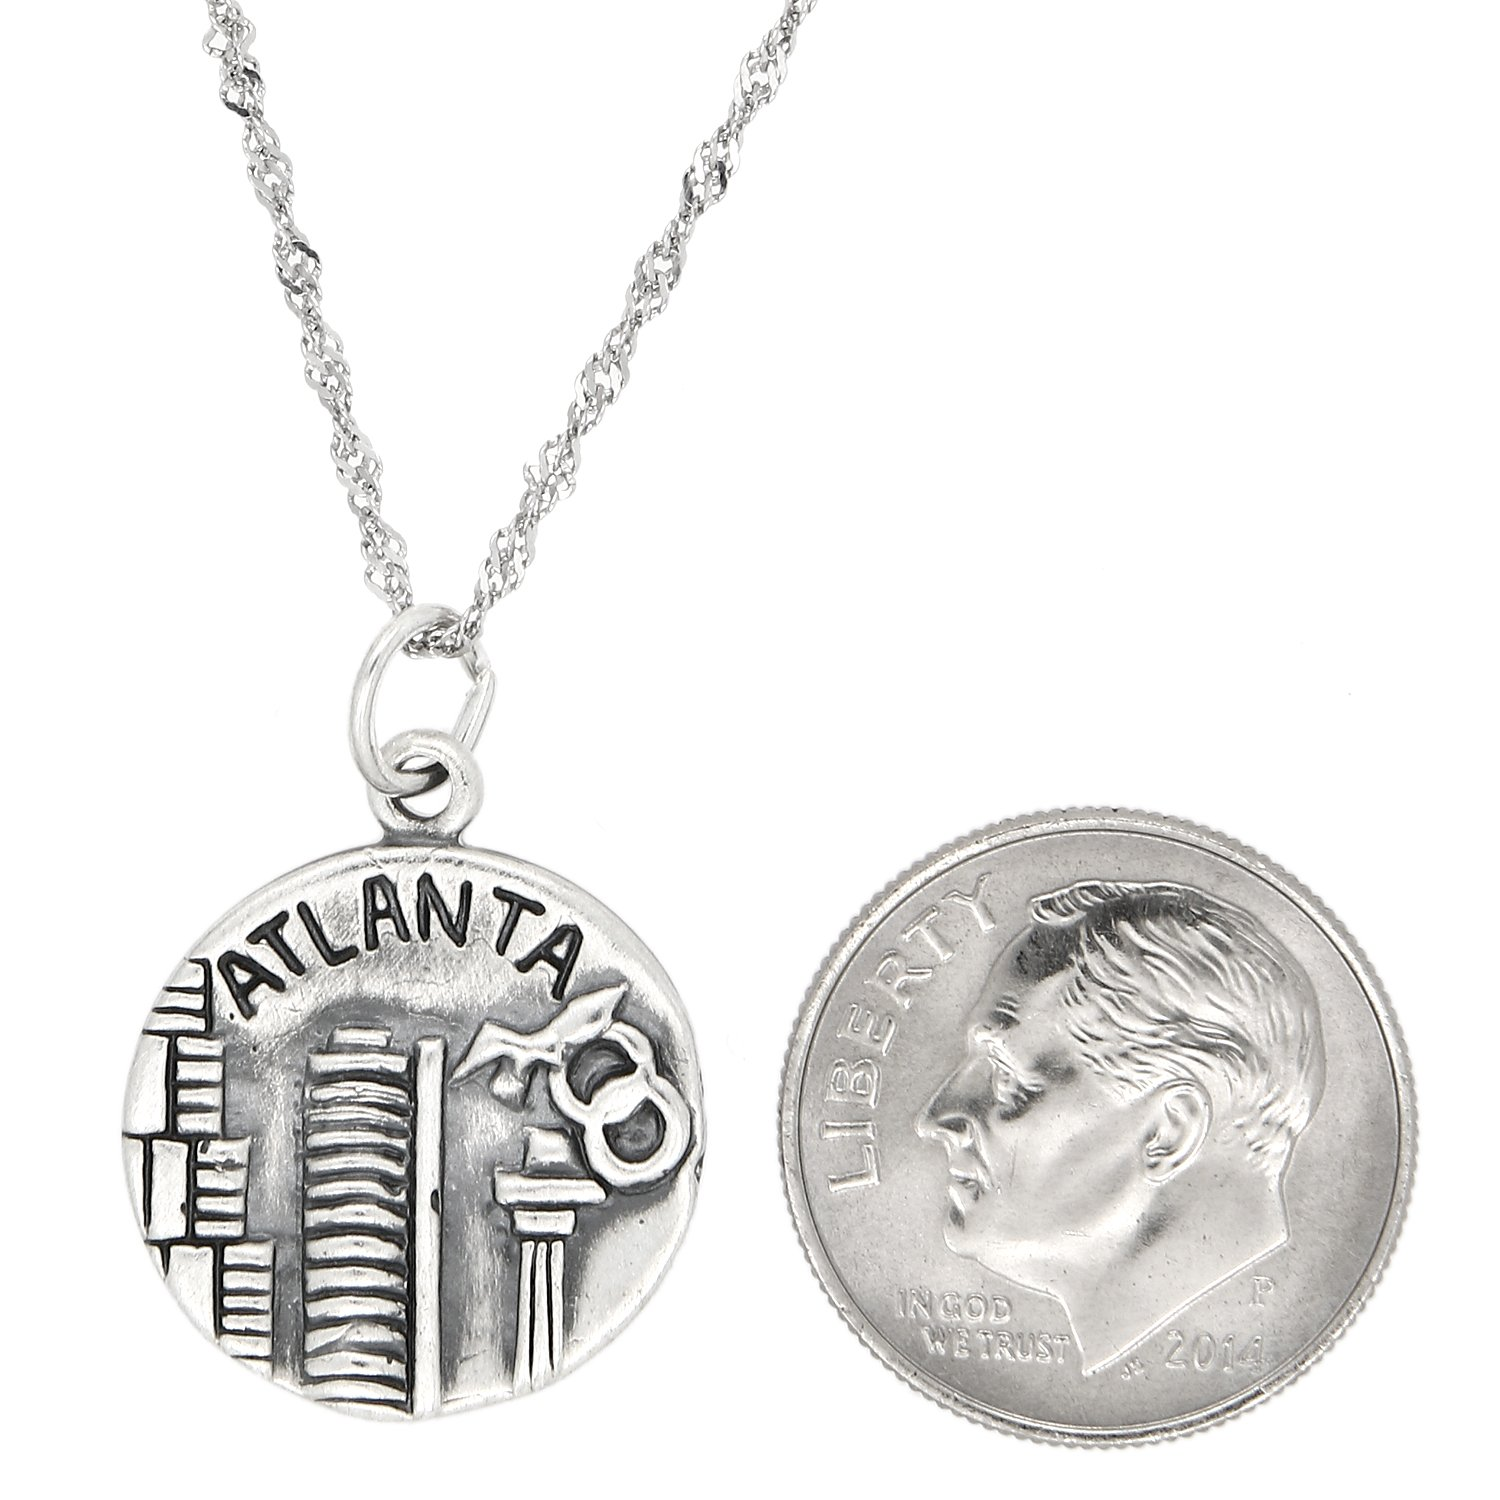 Lgu Sterling Silver Oxidized Atlanta The Big A Charm with Thin Singapore Chain Necklace